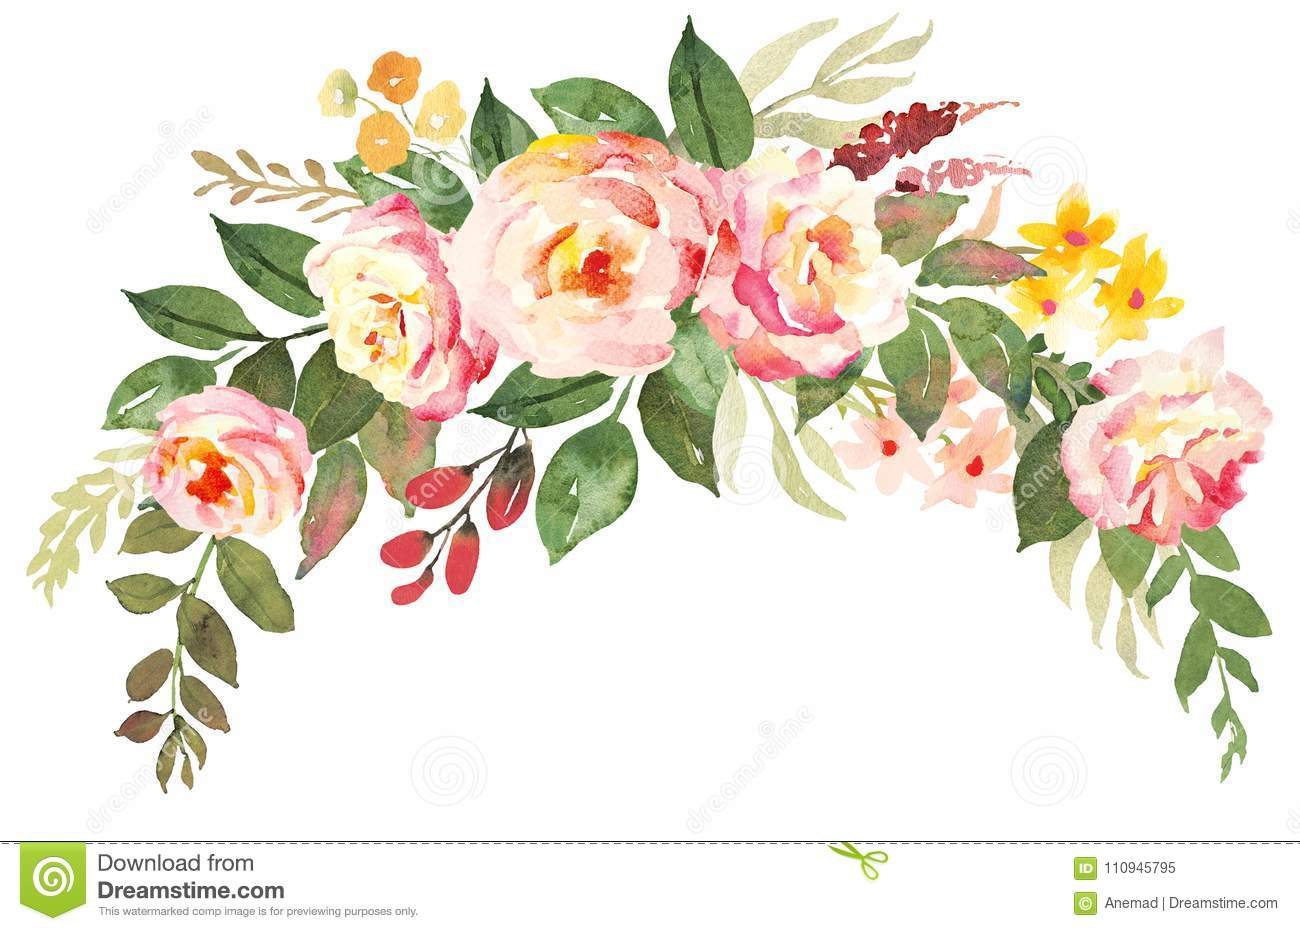 Flower bouquet with pink roses stock illustration illustration of download flower bouquet with pink roses stock illustration illustration of floral fresh izmirmasajfo